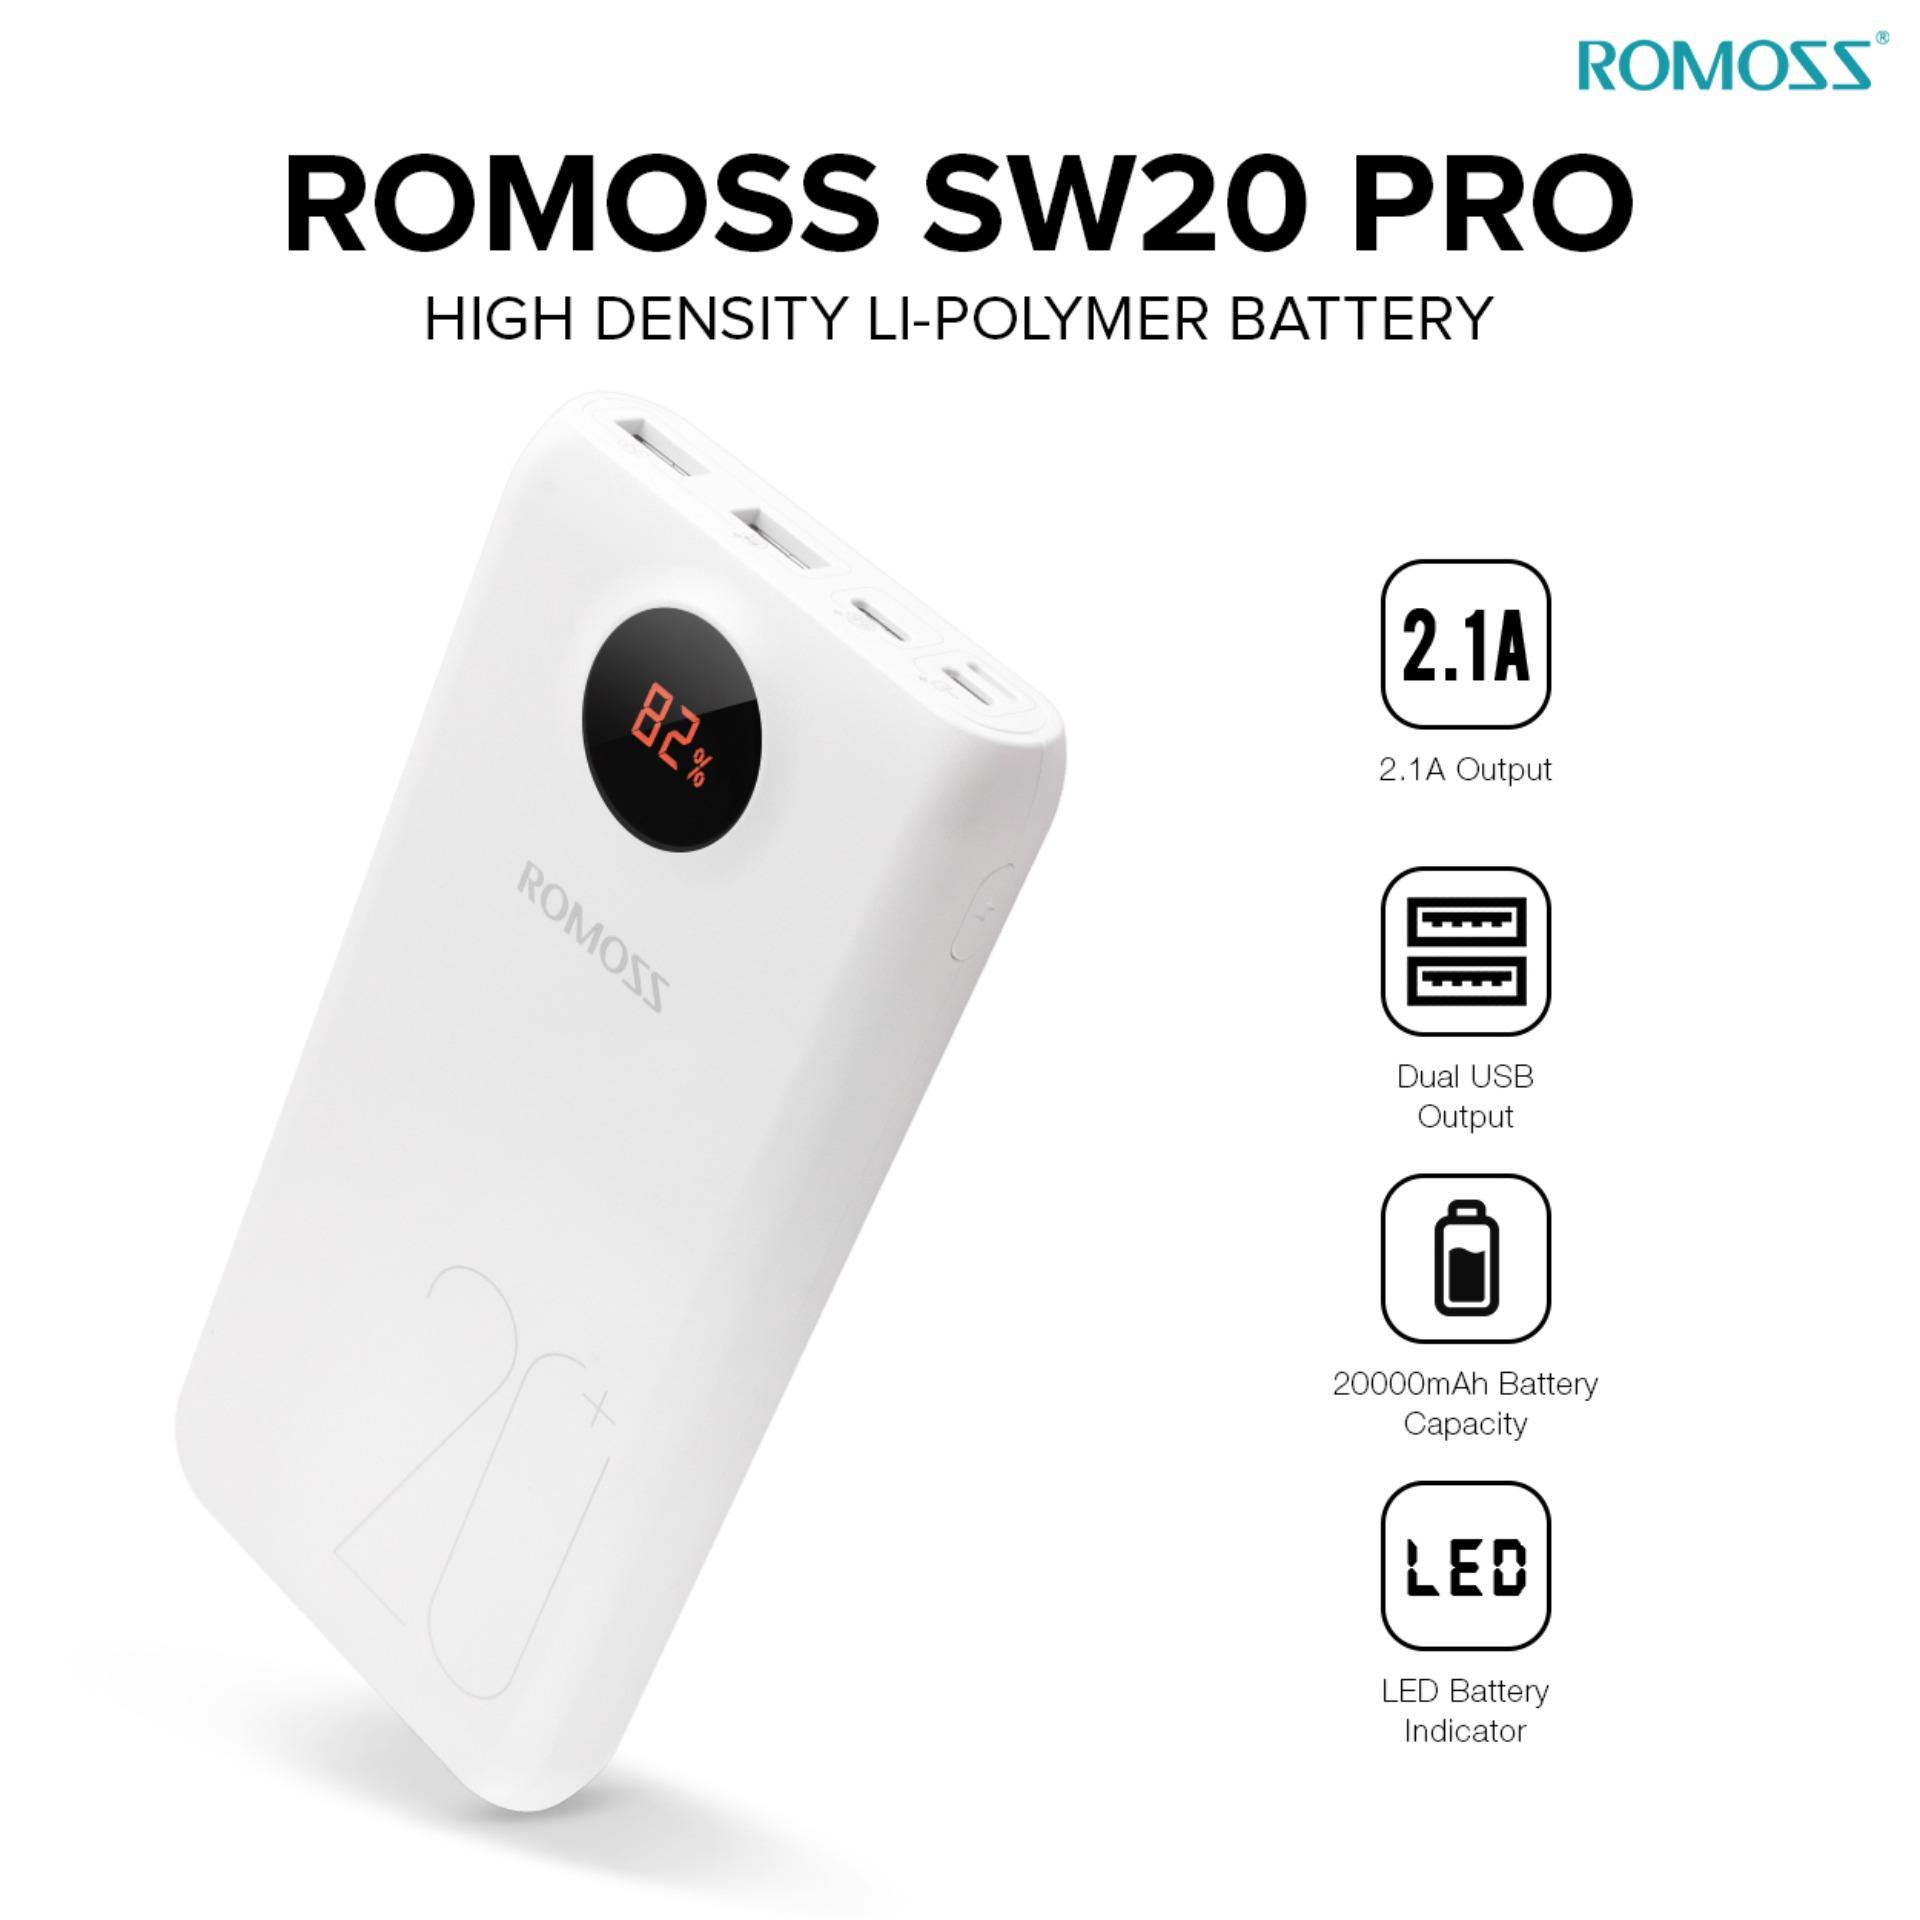 Romoss Philippines Power Bank For Sale Prices Reviews Cash Pb 20000 Sw20 Pro Mah Powerbank White